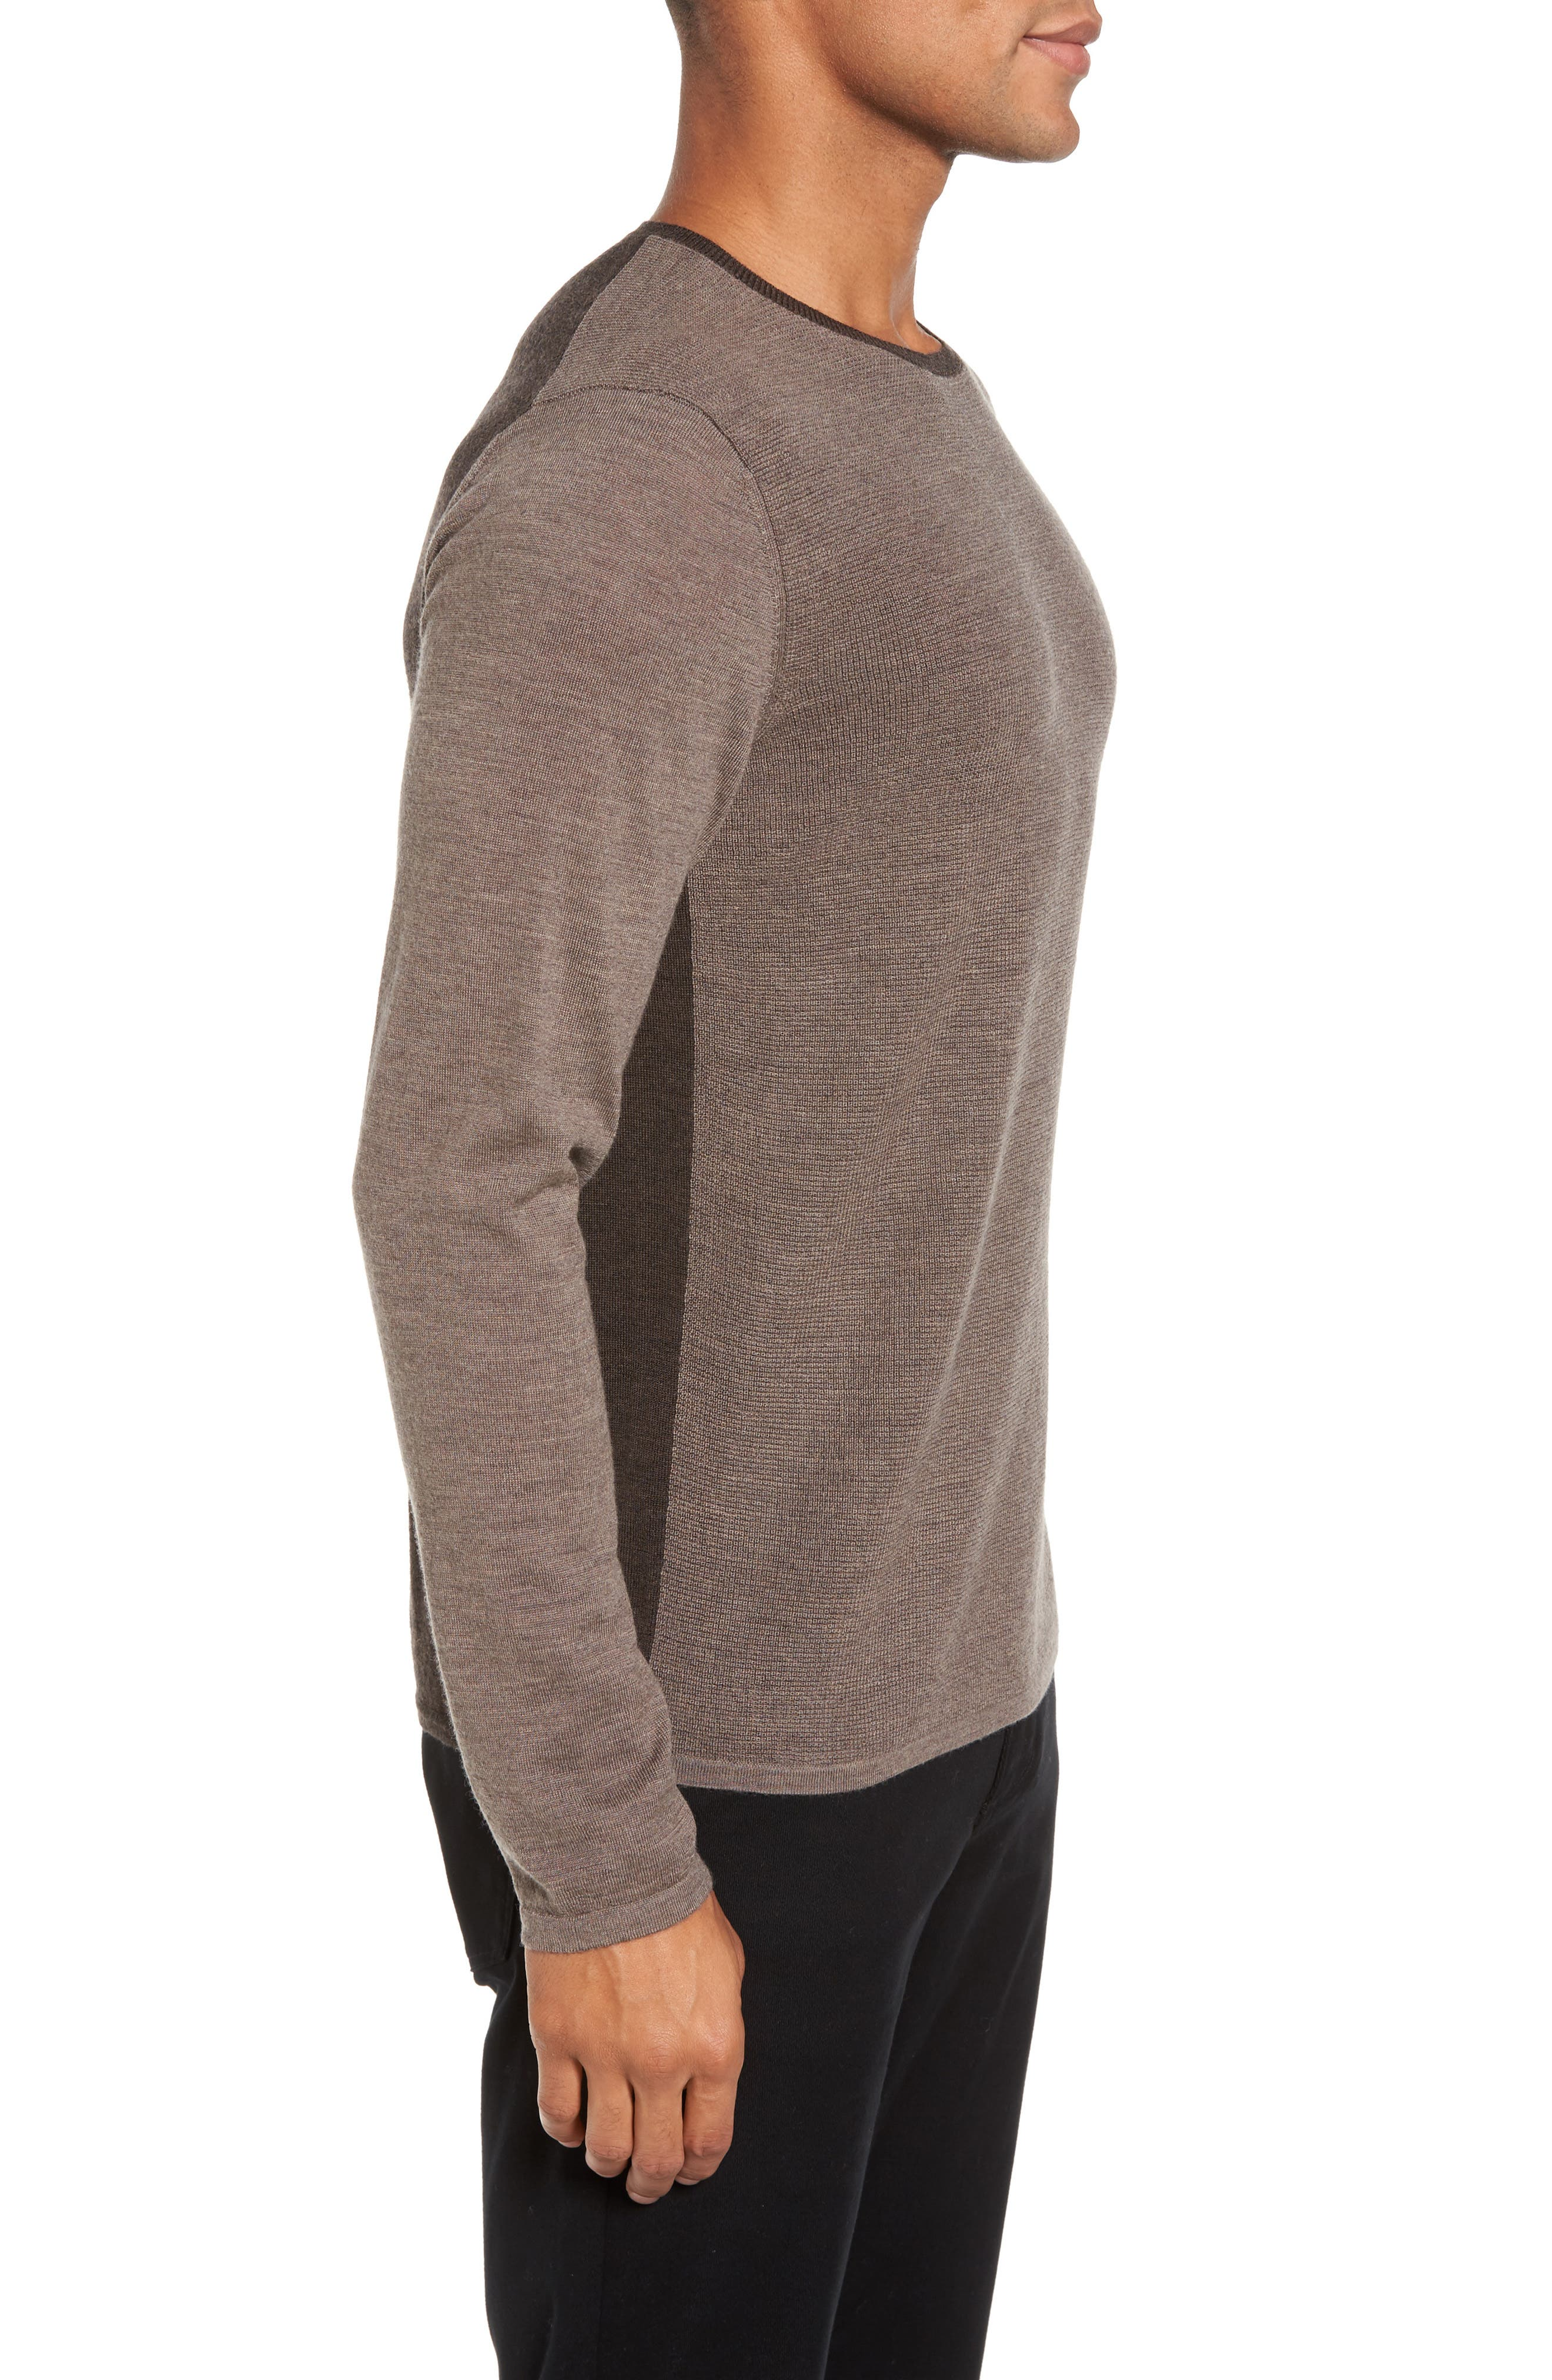 Huxley Merino Sweater,                             Alternate thumbnail 3, color,                             Light Coffee